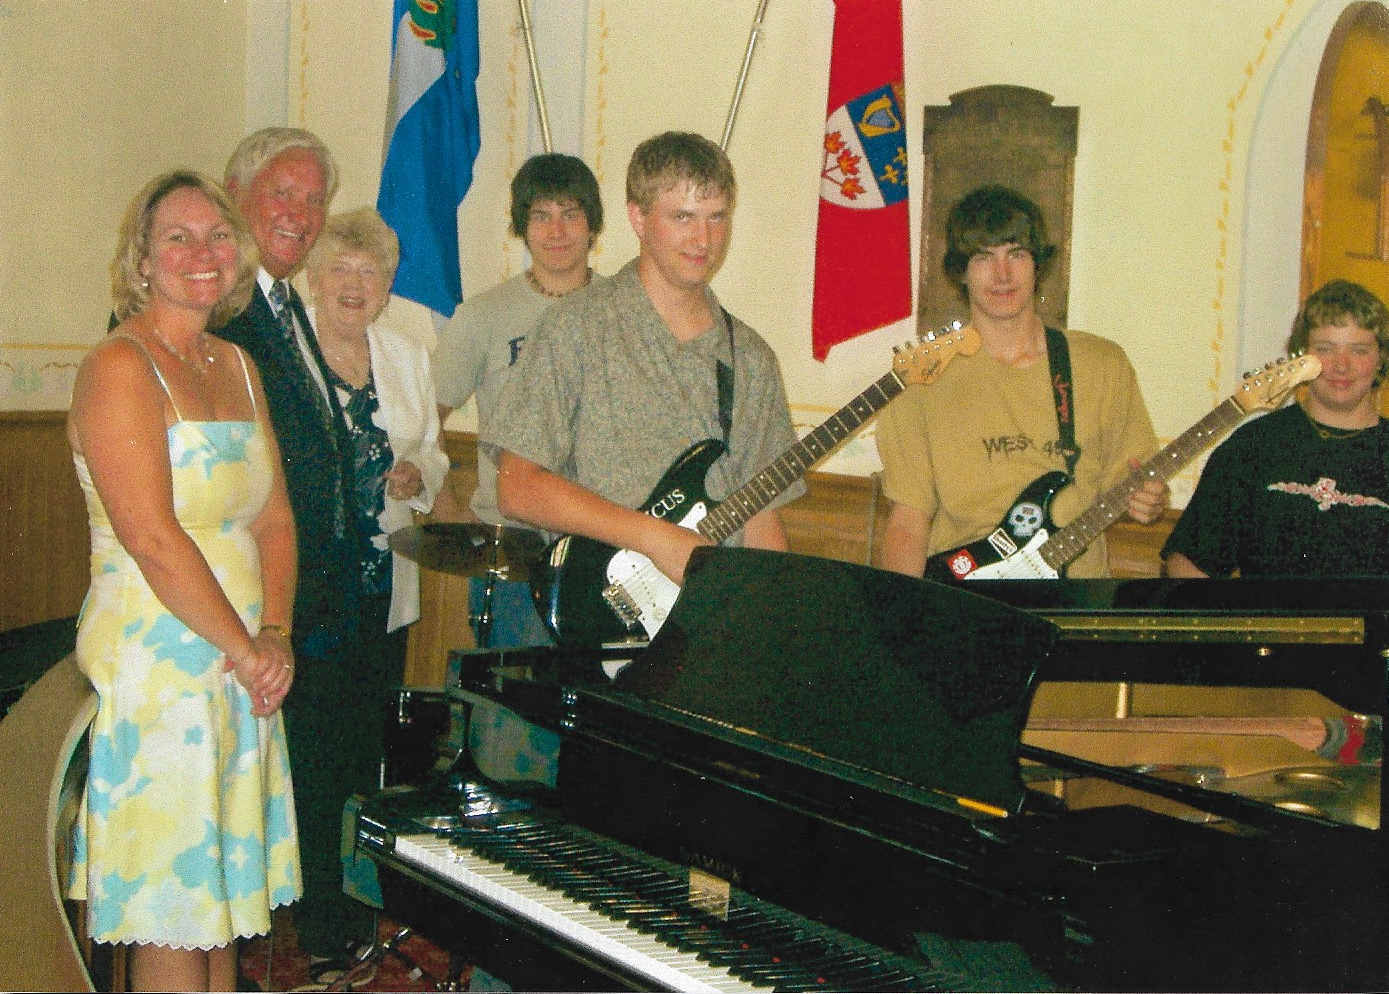 Praise Team & New Drum Set - June 26, 2005 L-R:  Agnes Henderson (Director), John Crawford, Marjorie Crawford, Andrew Kerr (drums), Dustin Hamilton (guitar), Tyler Kerr (guitar), Mitchell Dekker (bass guitar)   (Drums donated in memory of David Crawford).